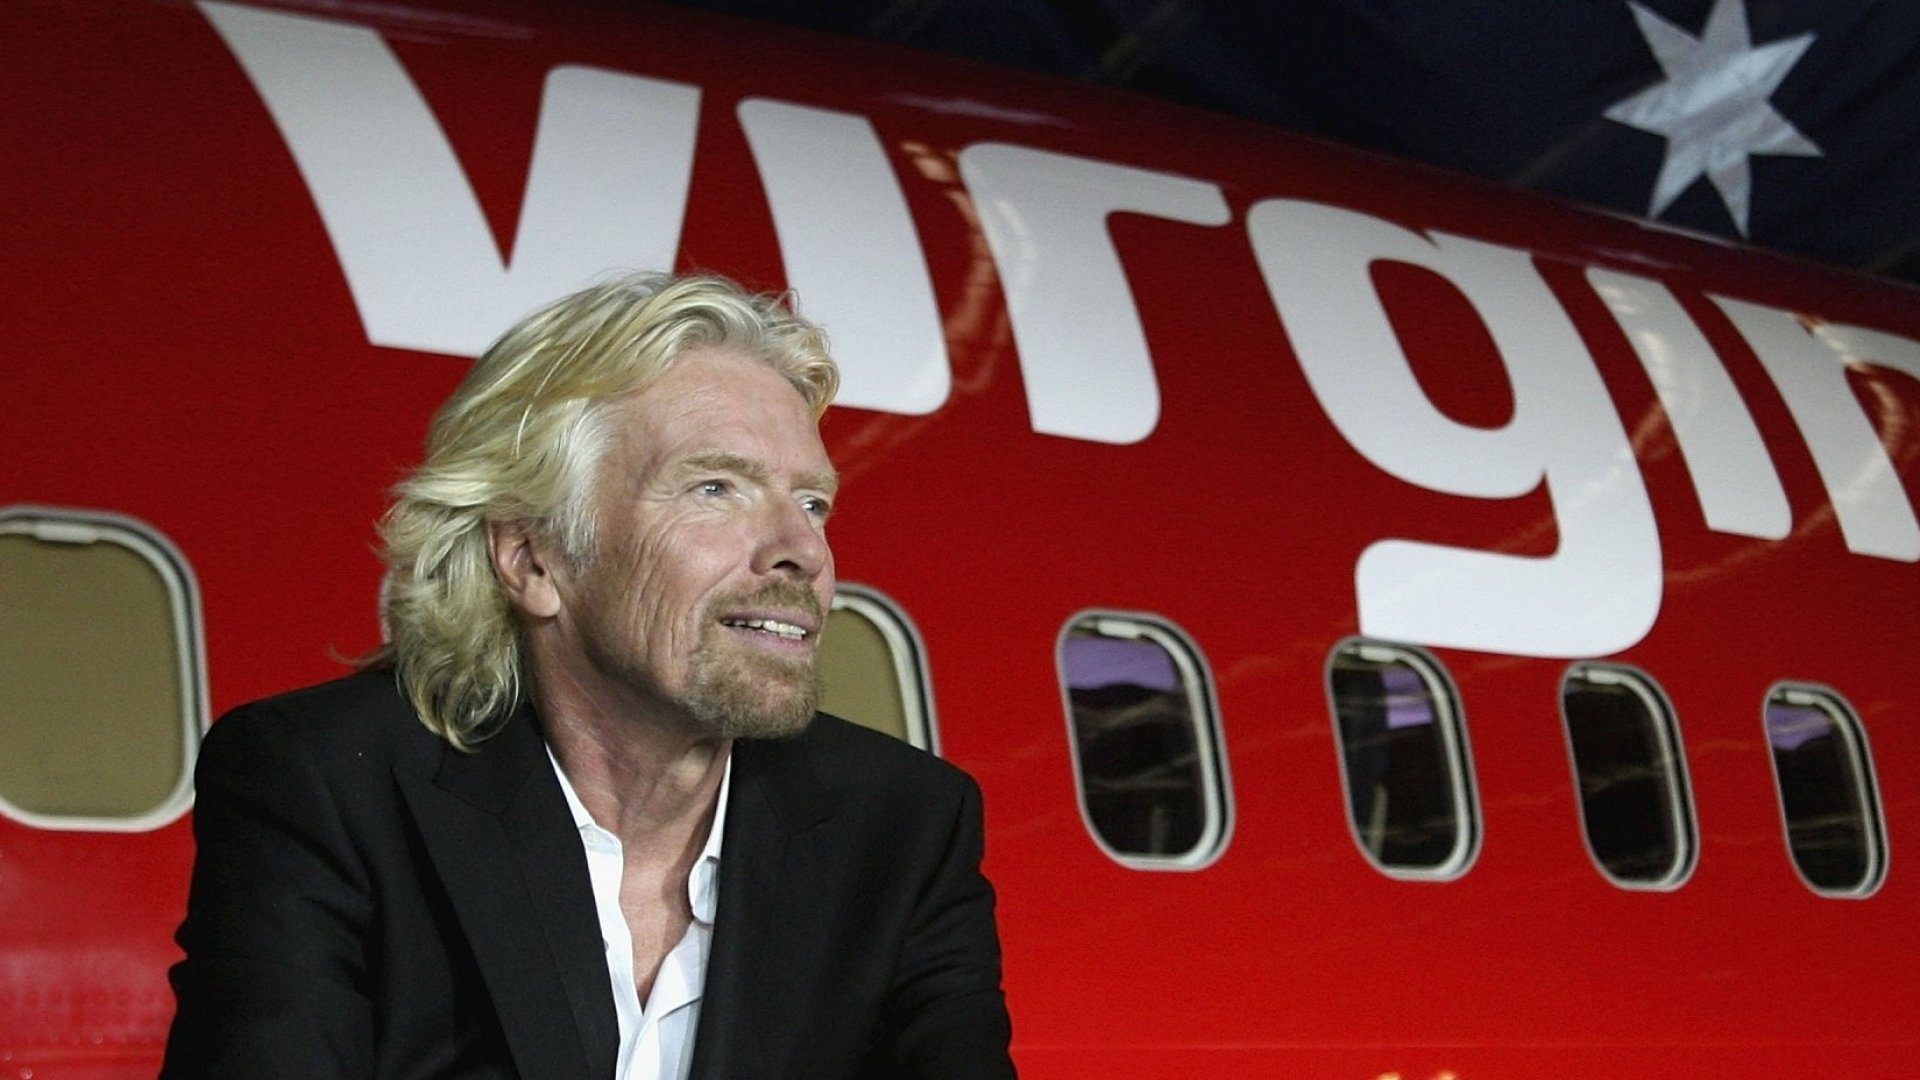 The Important Lesson Elon Musk, Richard Branson, and Other LeadersHave Learned About Personal Branding